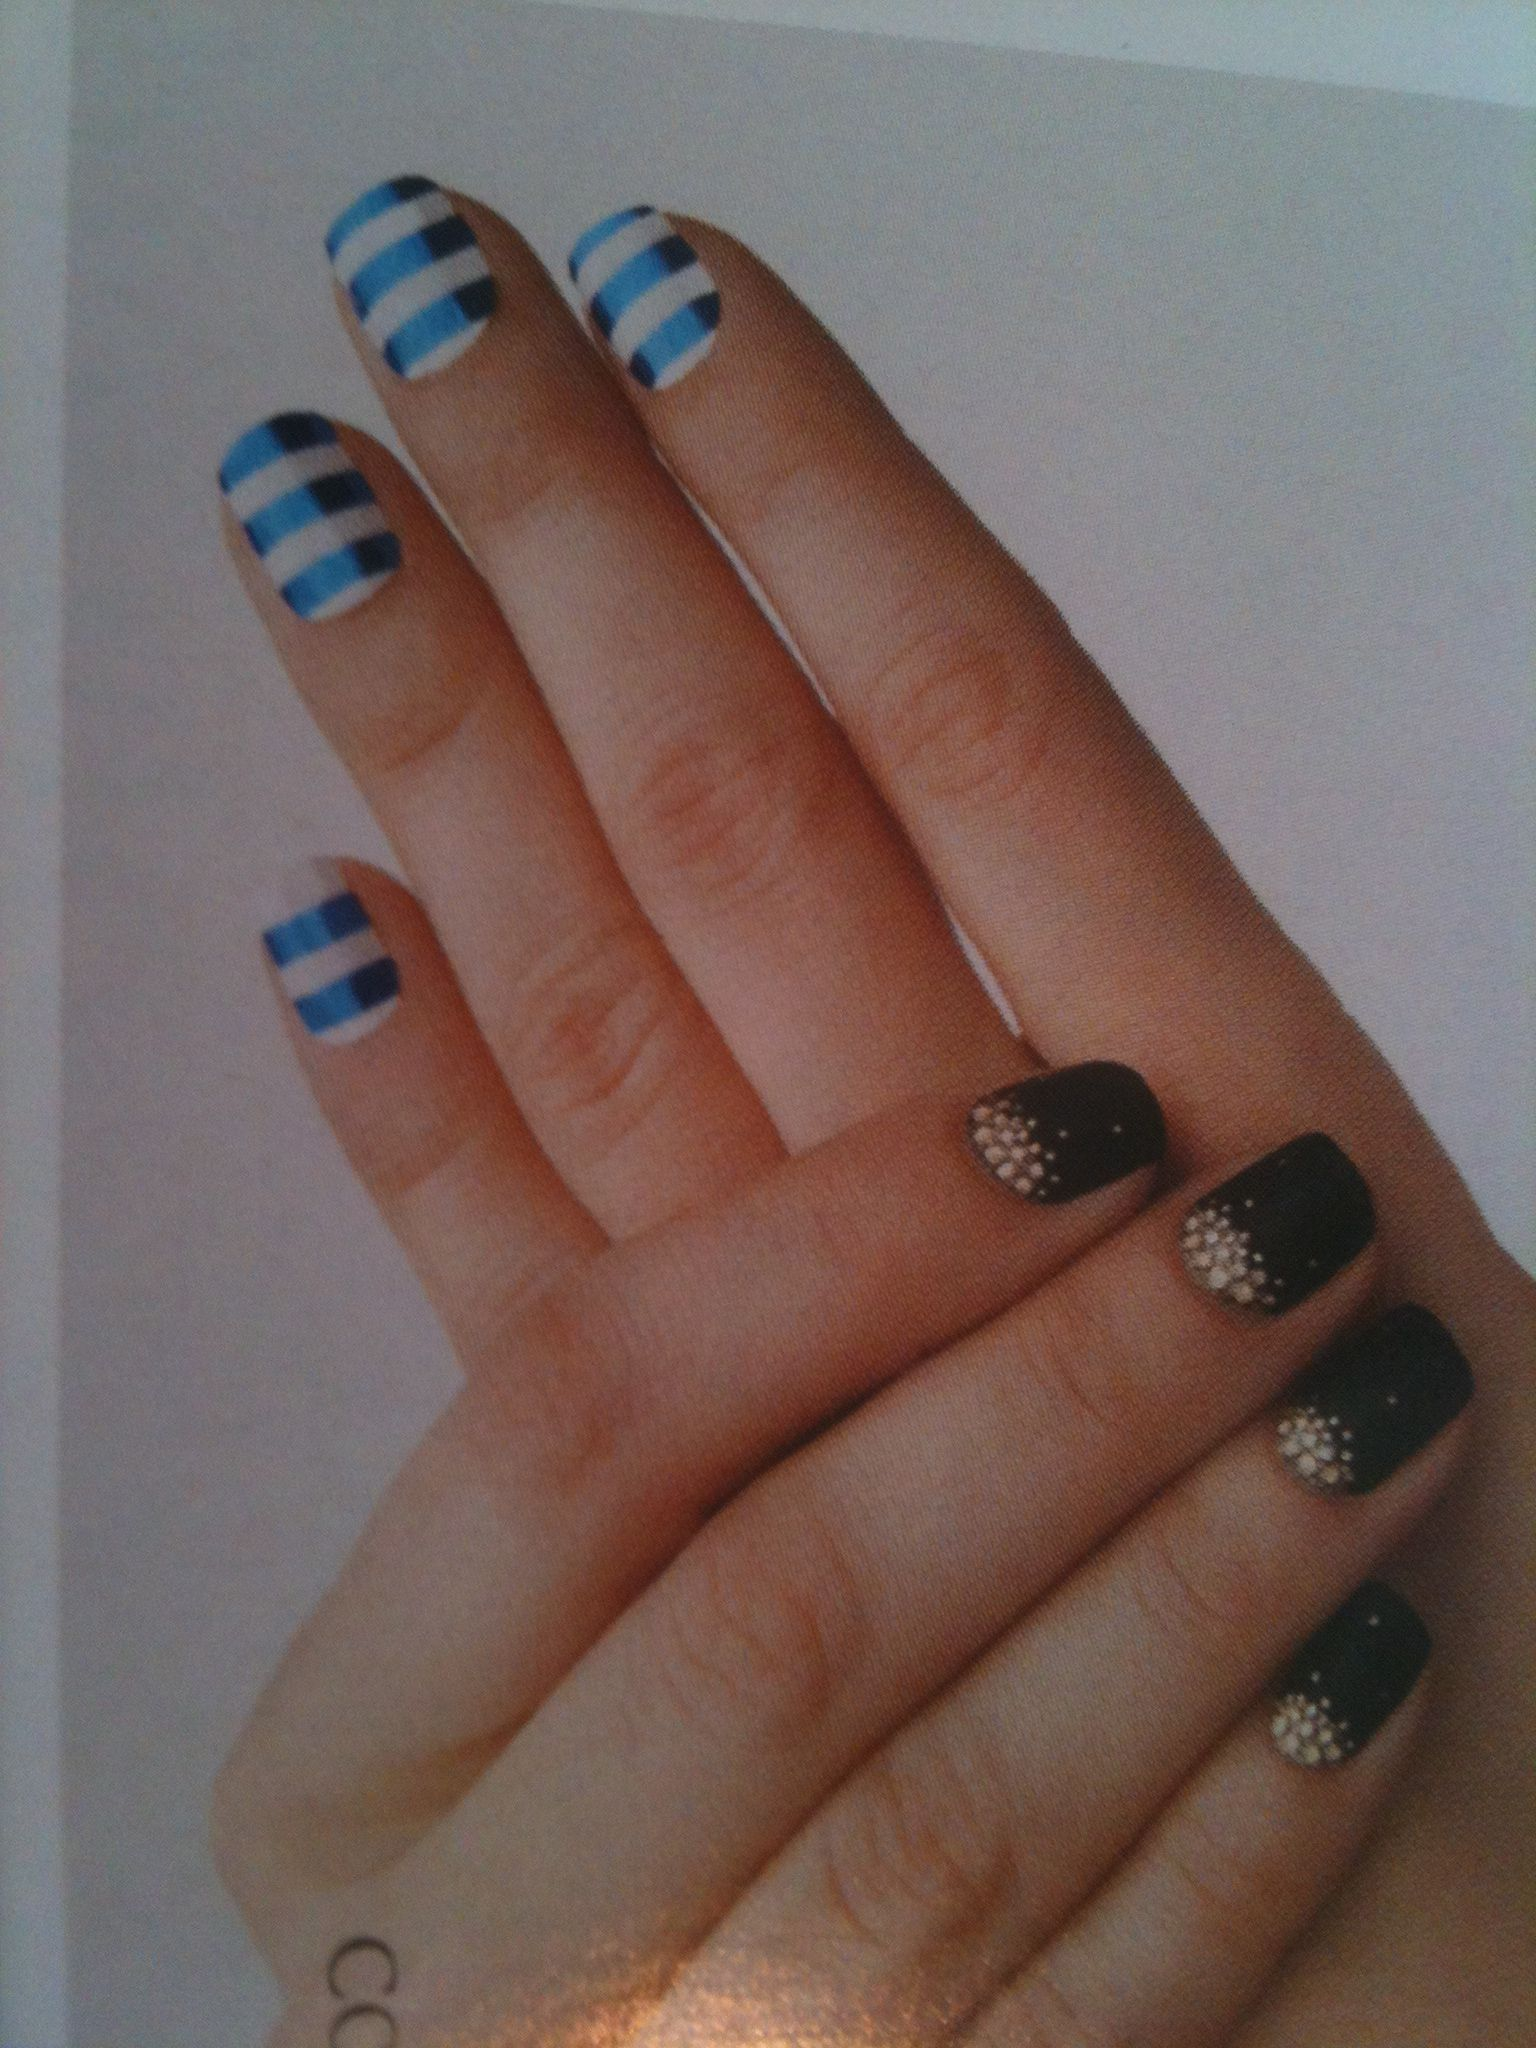 Love the sailor nails ;)